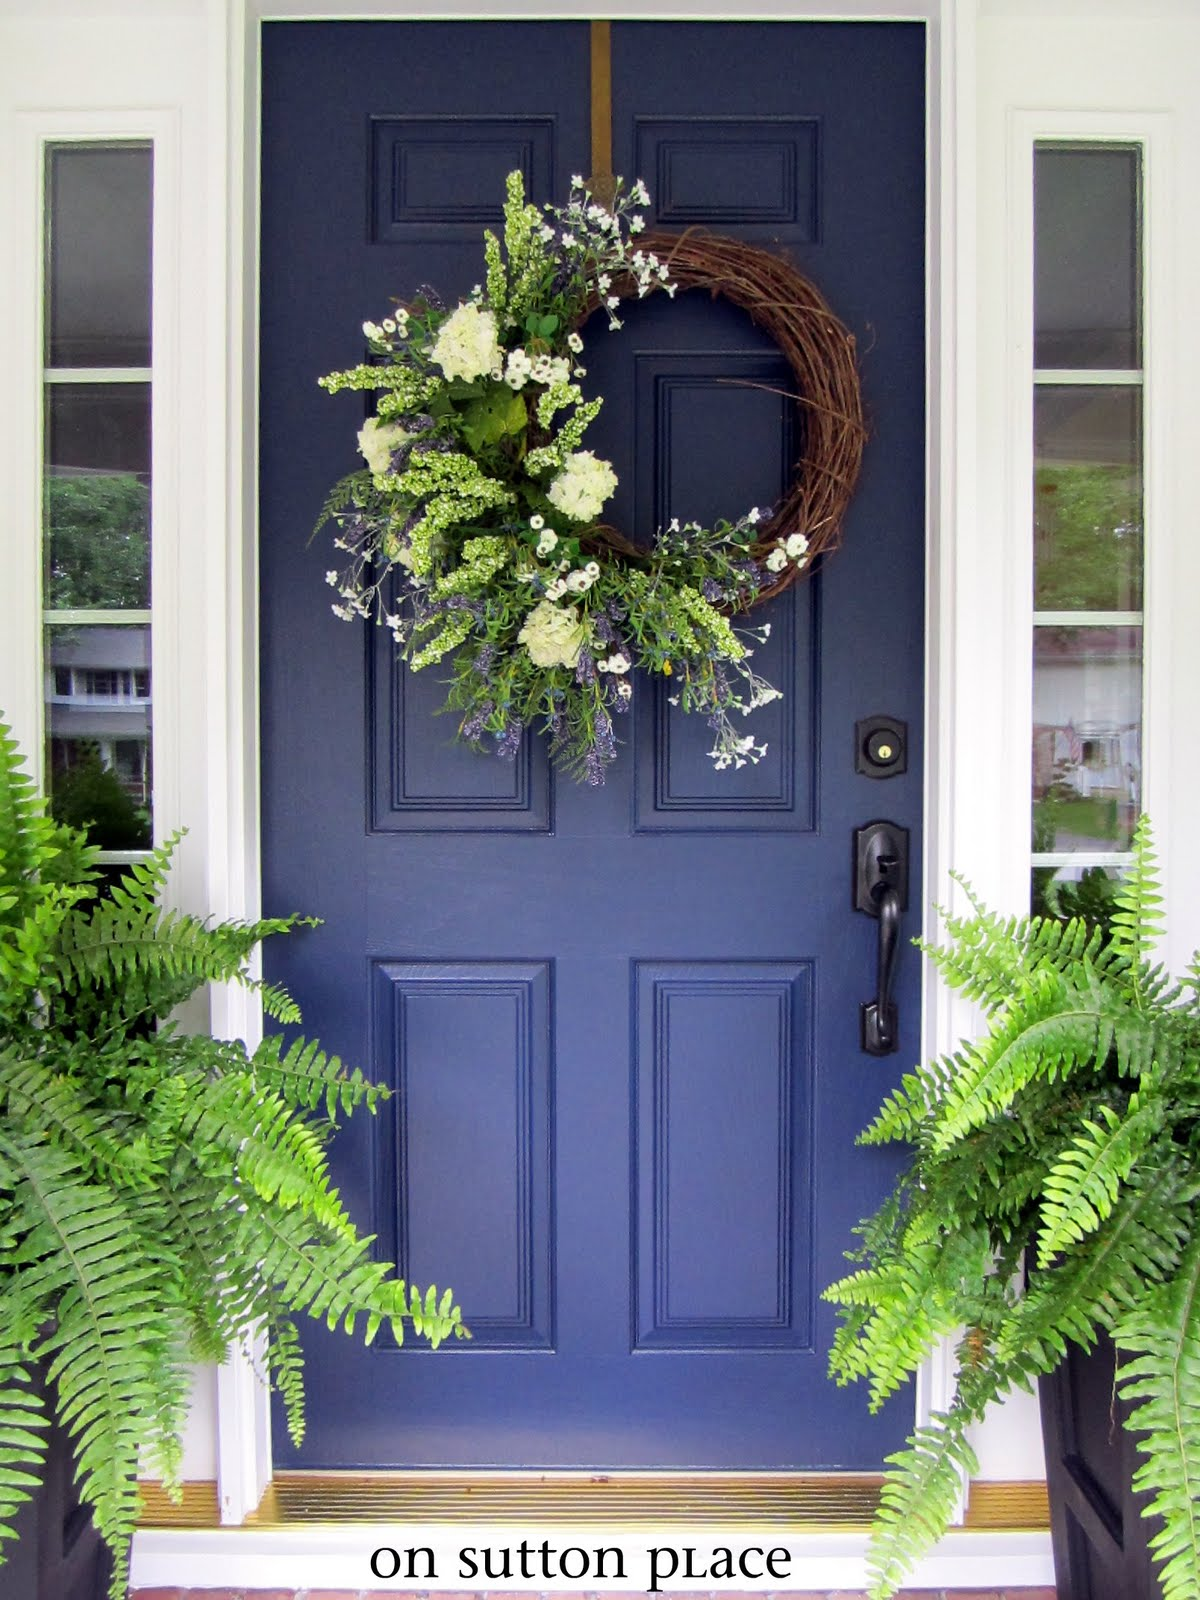 My new blue front door on sutton place my new blue front door rubansaba